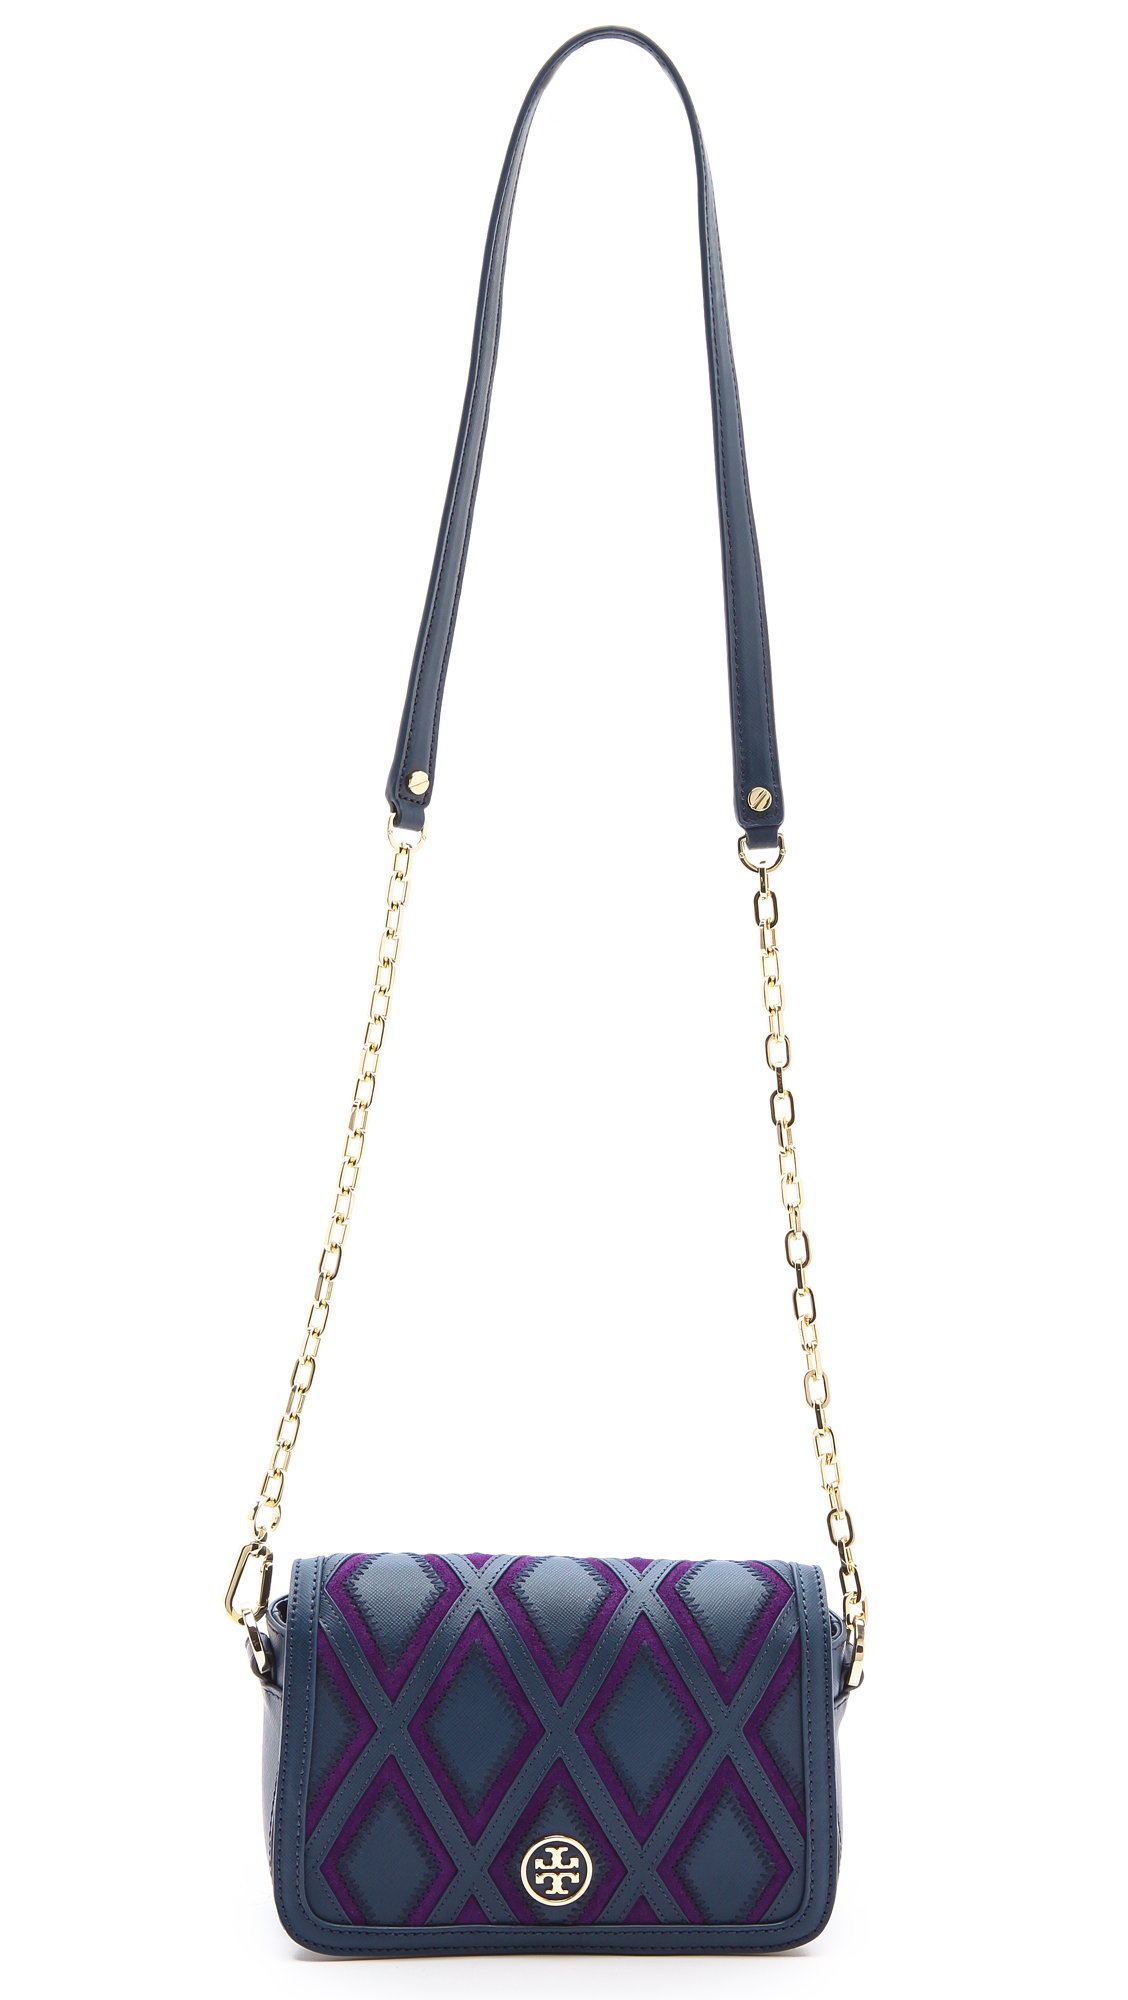 e1406e2882e Lyst - Tory Burch Robinson Patchwork Mini Chain Bag in Purple